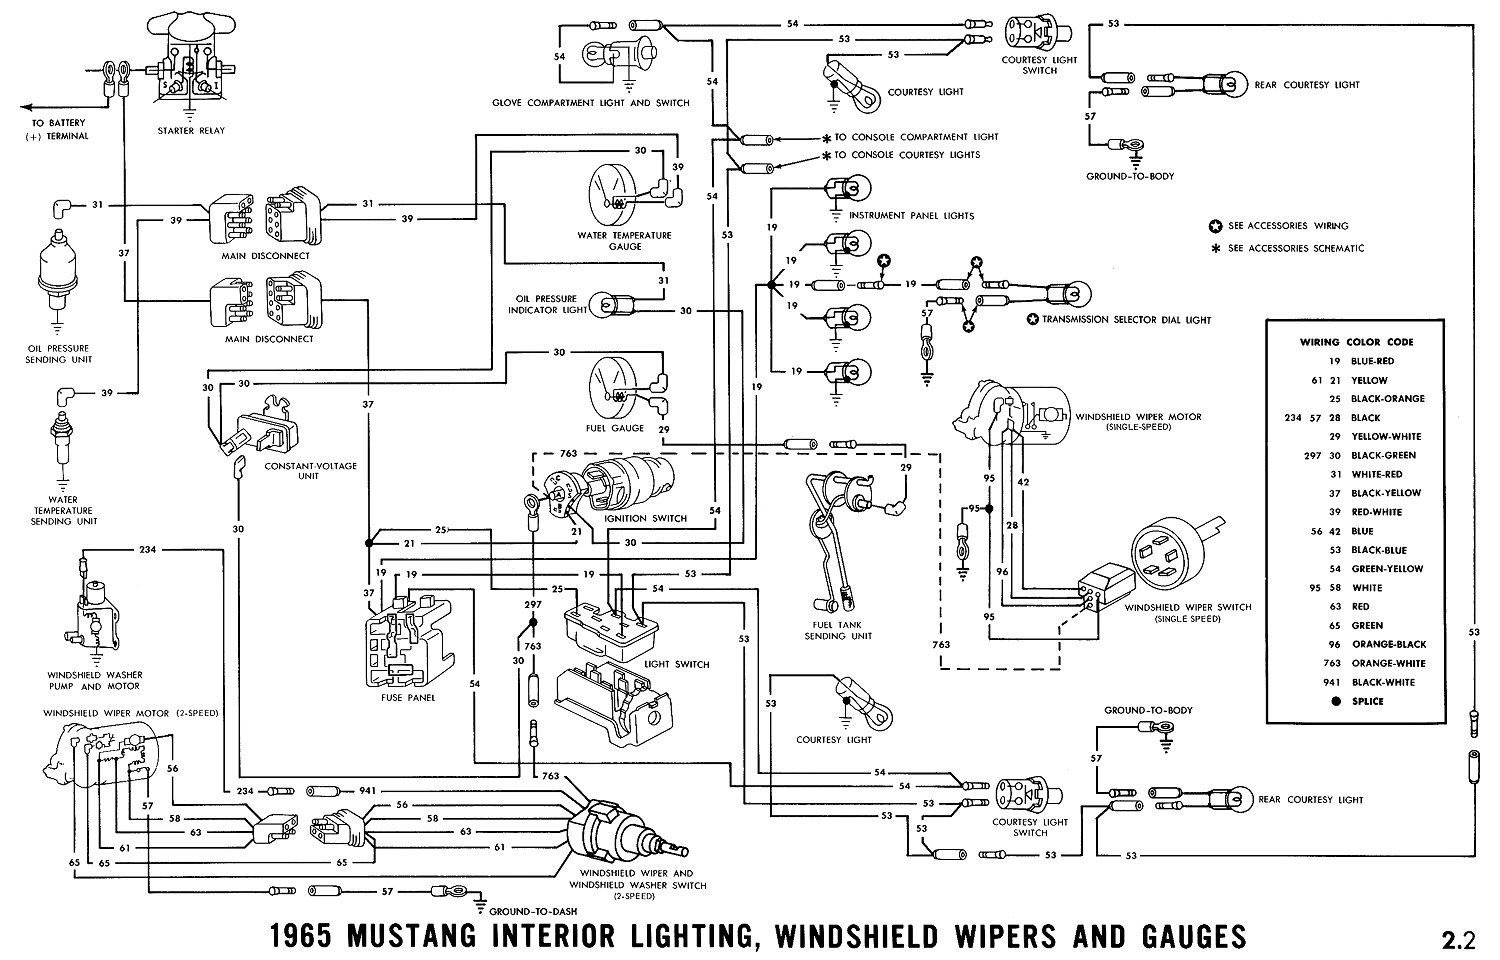 1965 mustang wiring diagrams average joe restoration rh averagejoerestoration com 65 mustang engine wiring diagram 65 mustang horn wiring diagram